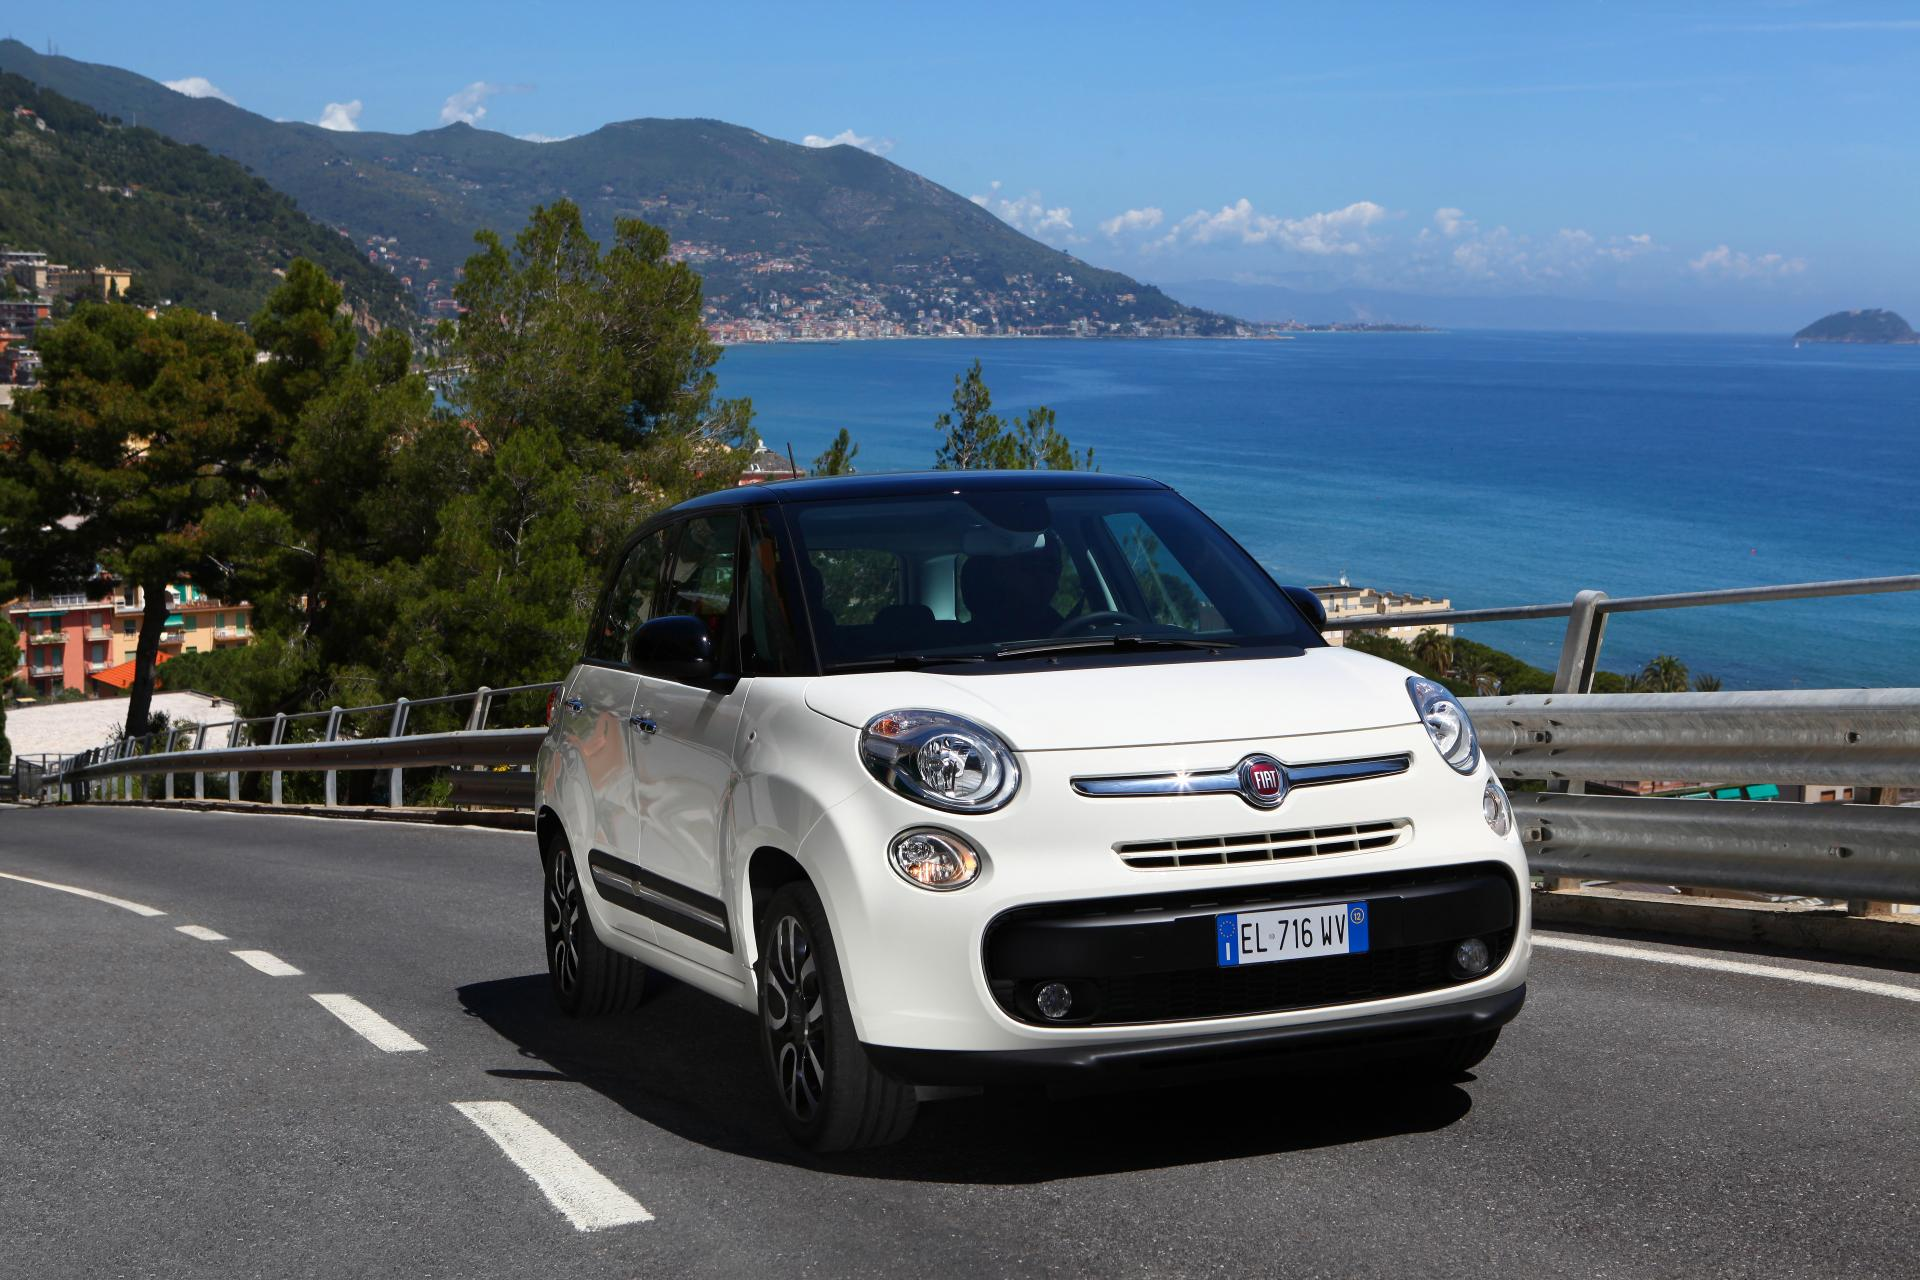 2013 fiat 500l technical specifications and data engine dimensions and mechanical details. Black Bedroom Furniture Sets. Home Design Ideas